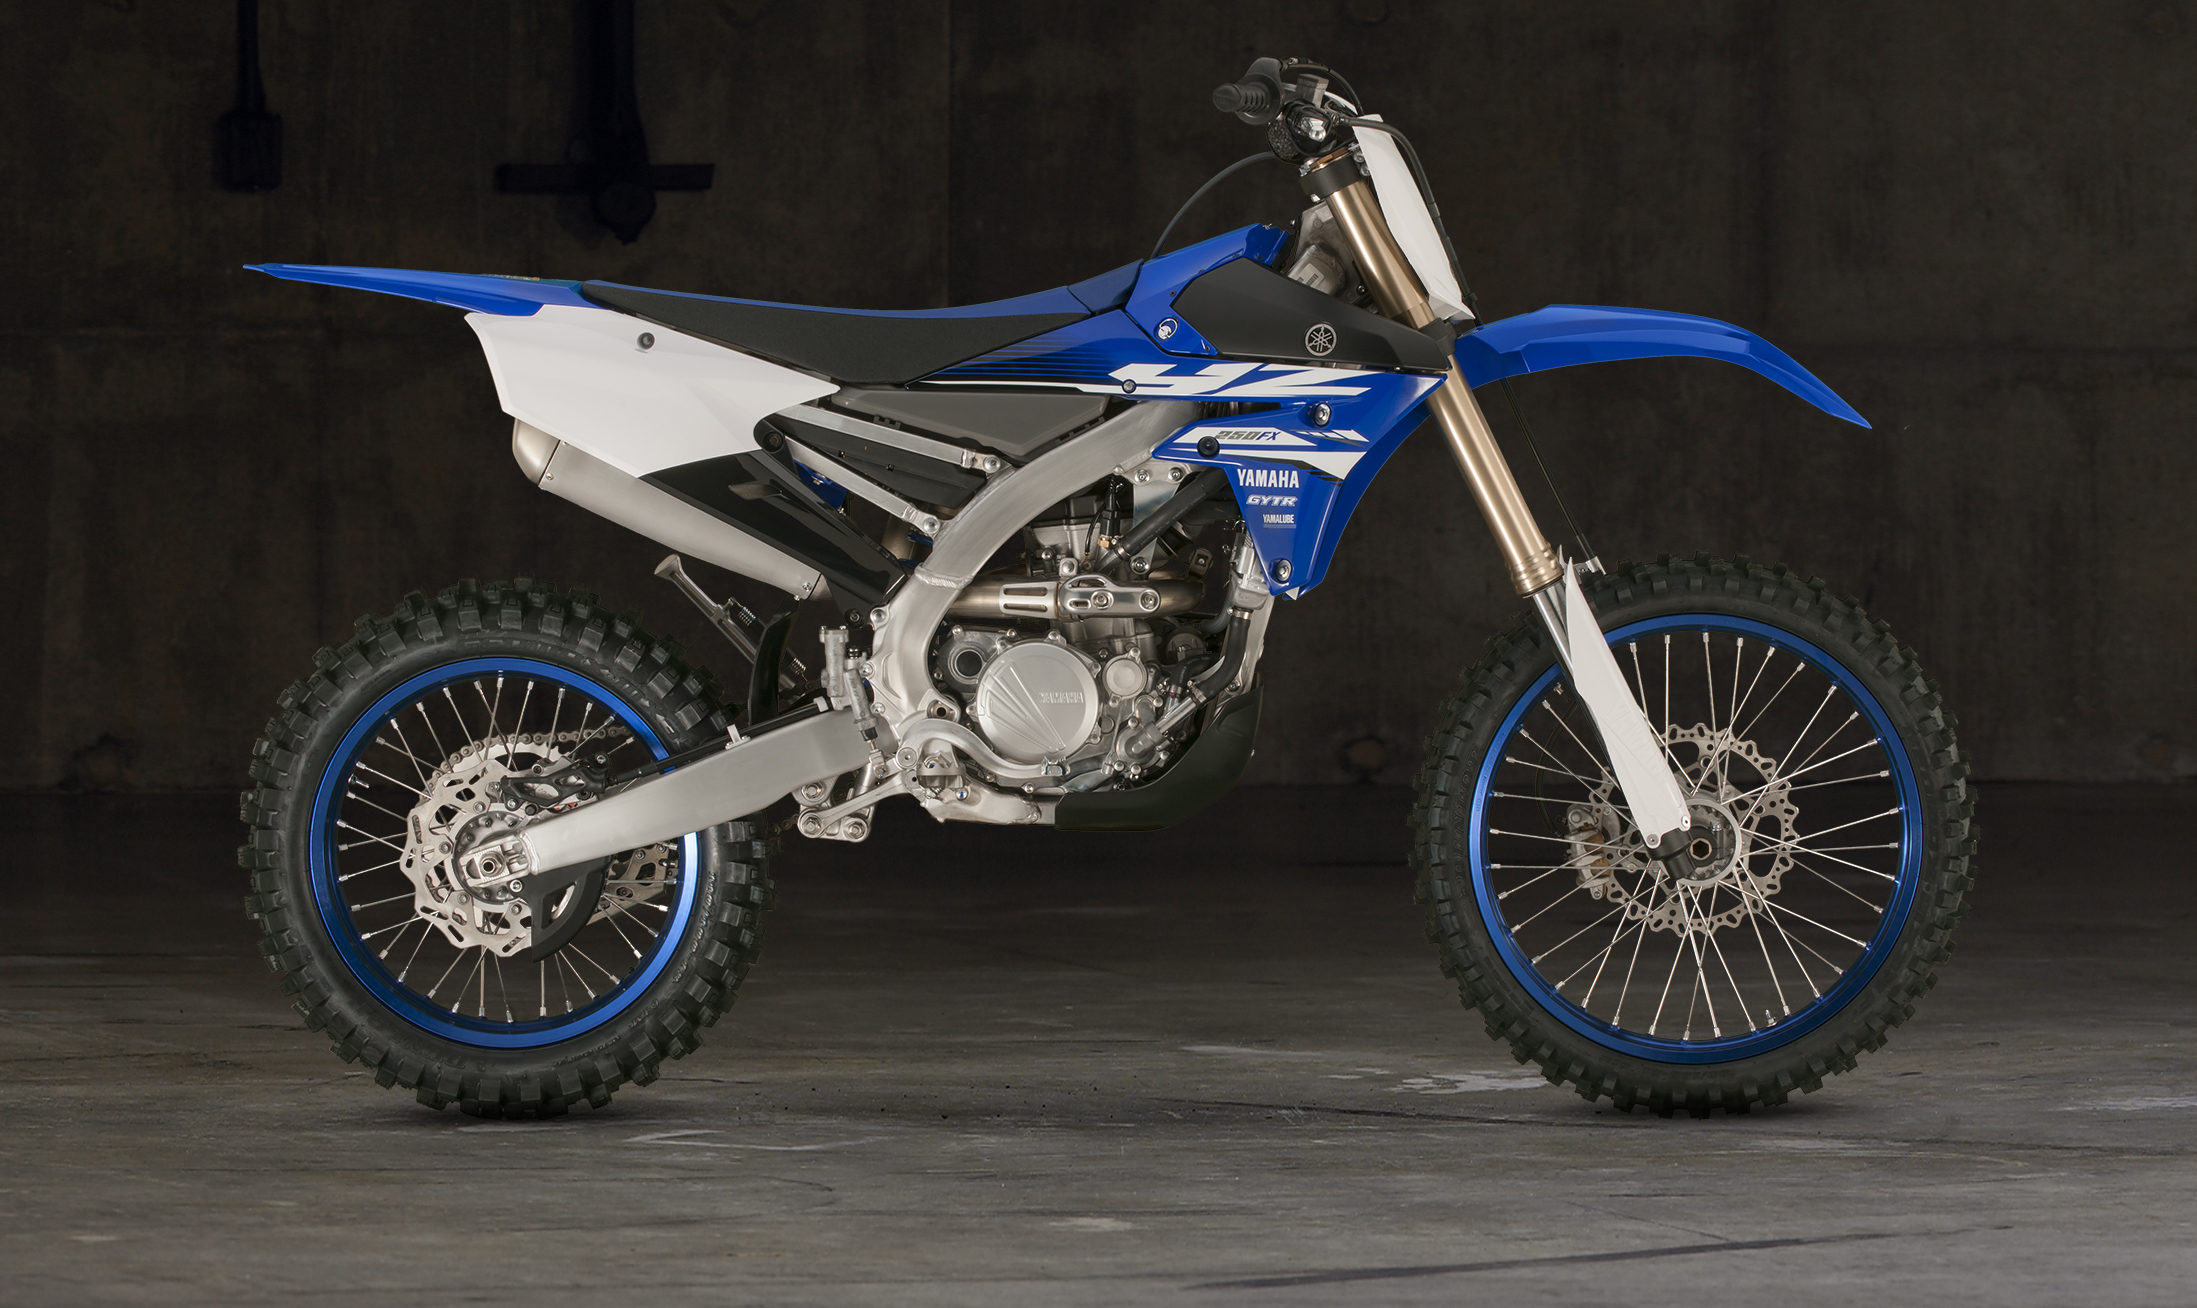 2018 Yamaha Yz250fx Cross Country Motorcycle 360 View